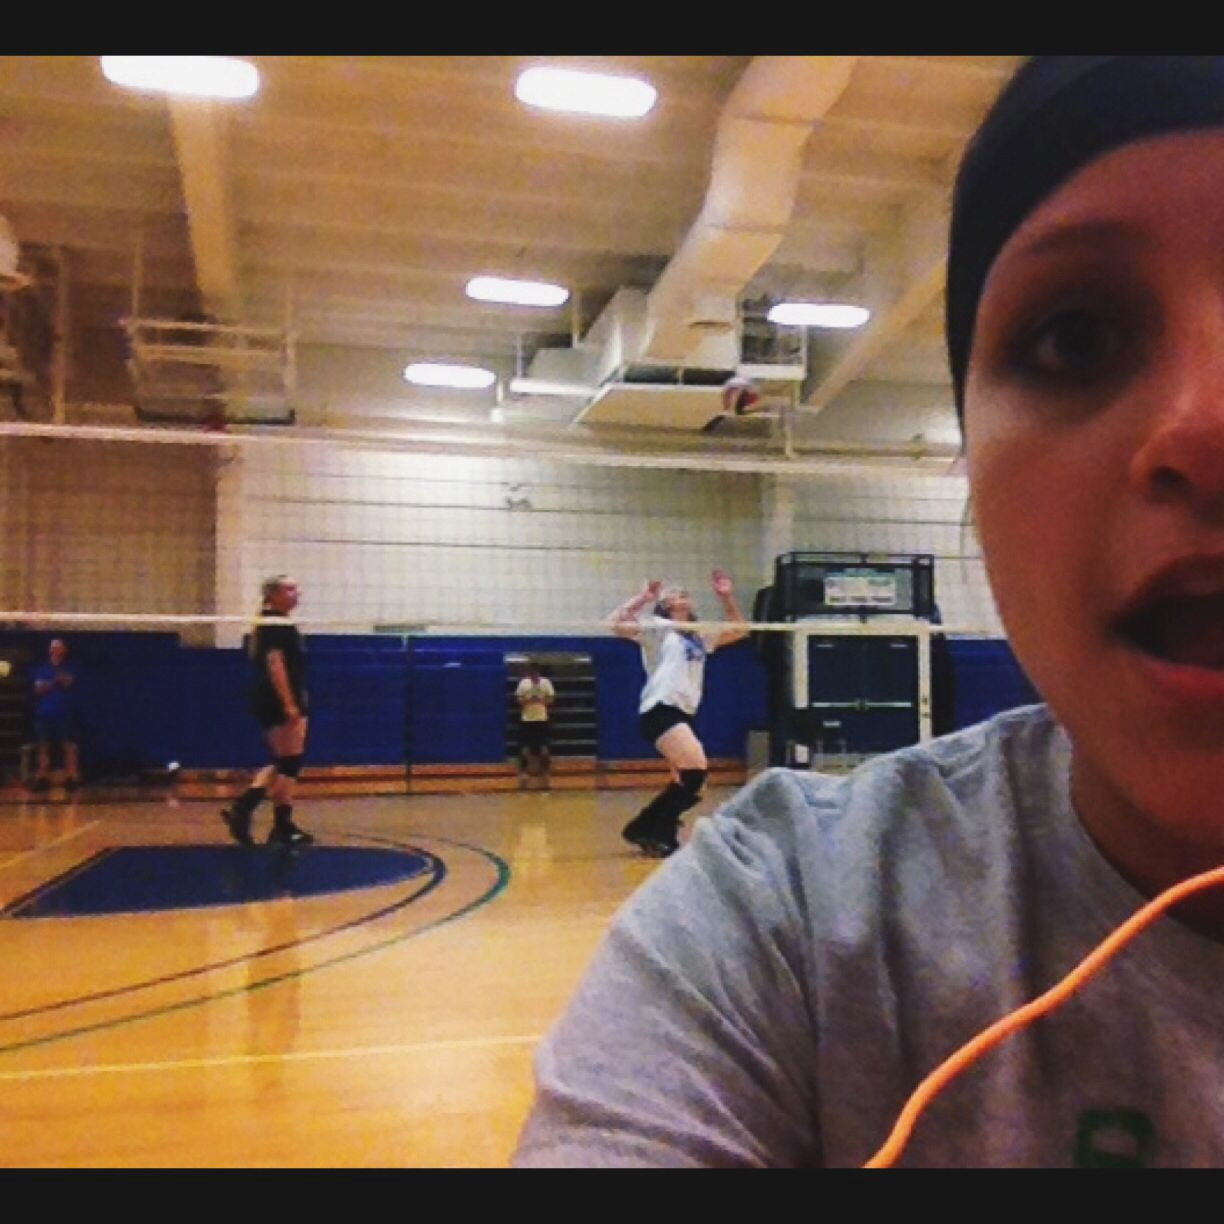 20 Volleyball Practice Selfie Got Hit In The Back Of The Head Right After I Took This Congrats To Carol Roth Volleyball Practice Usa Volleyball Volleyball